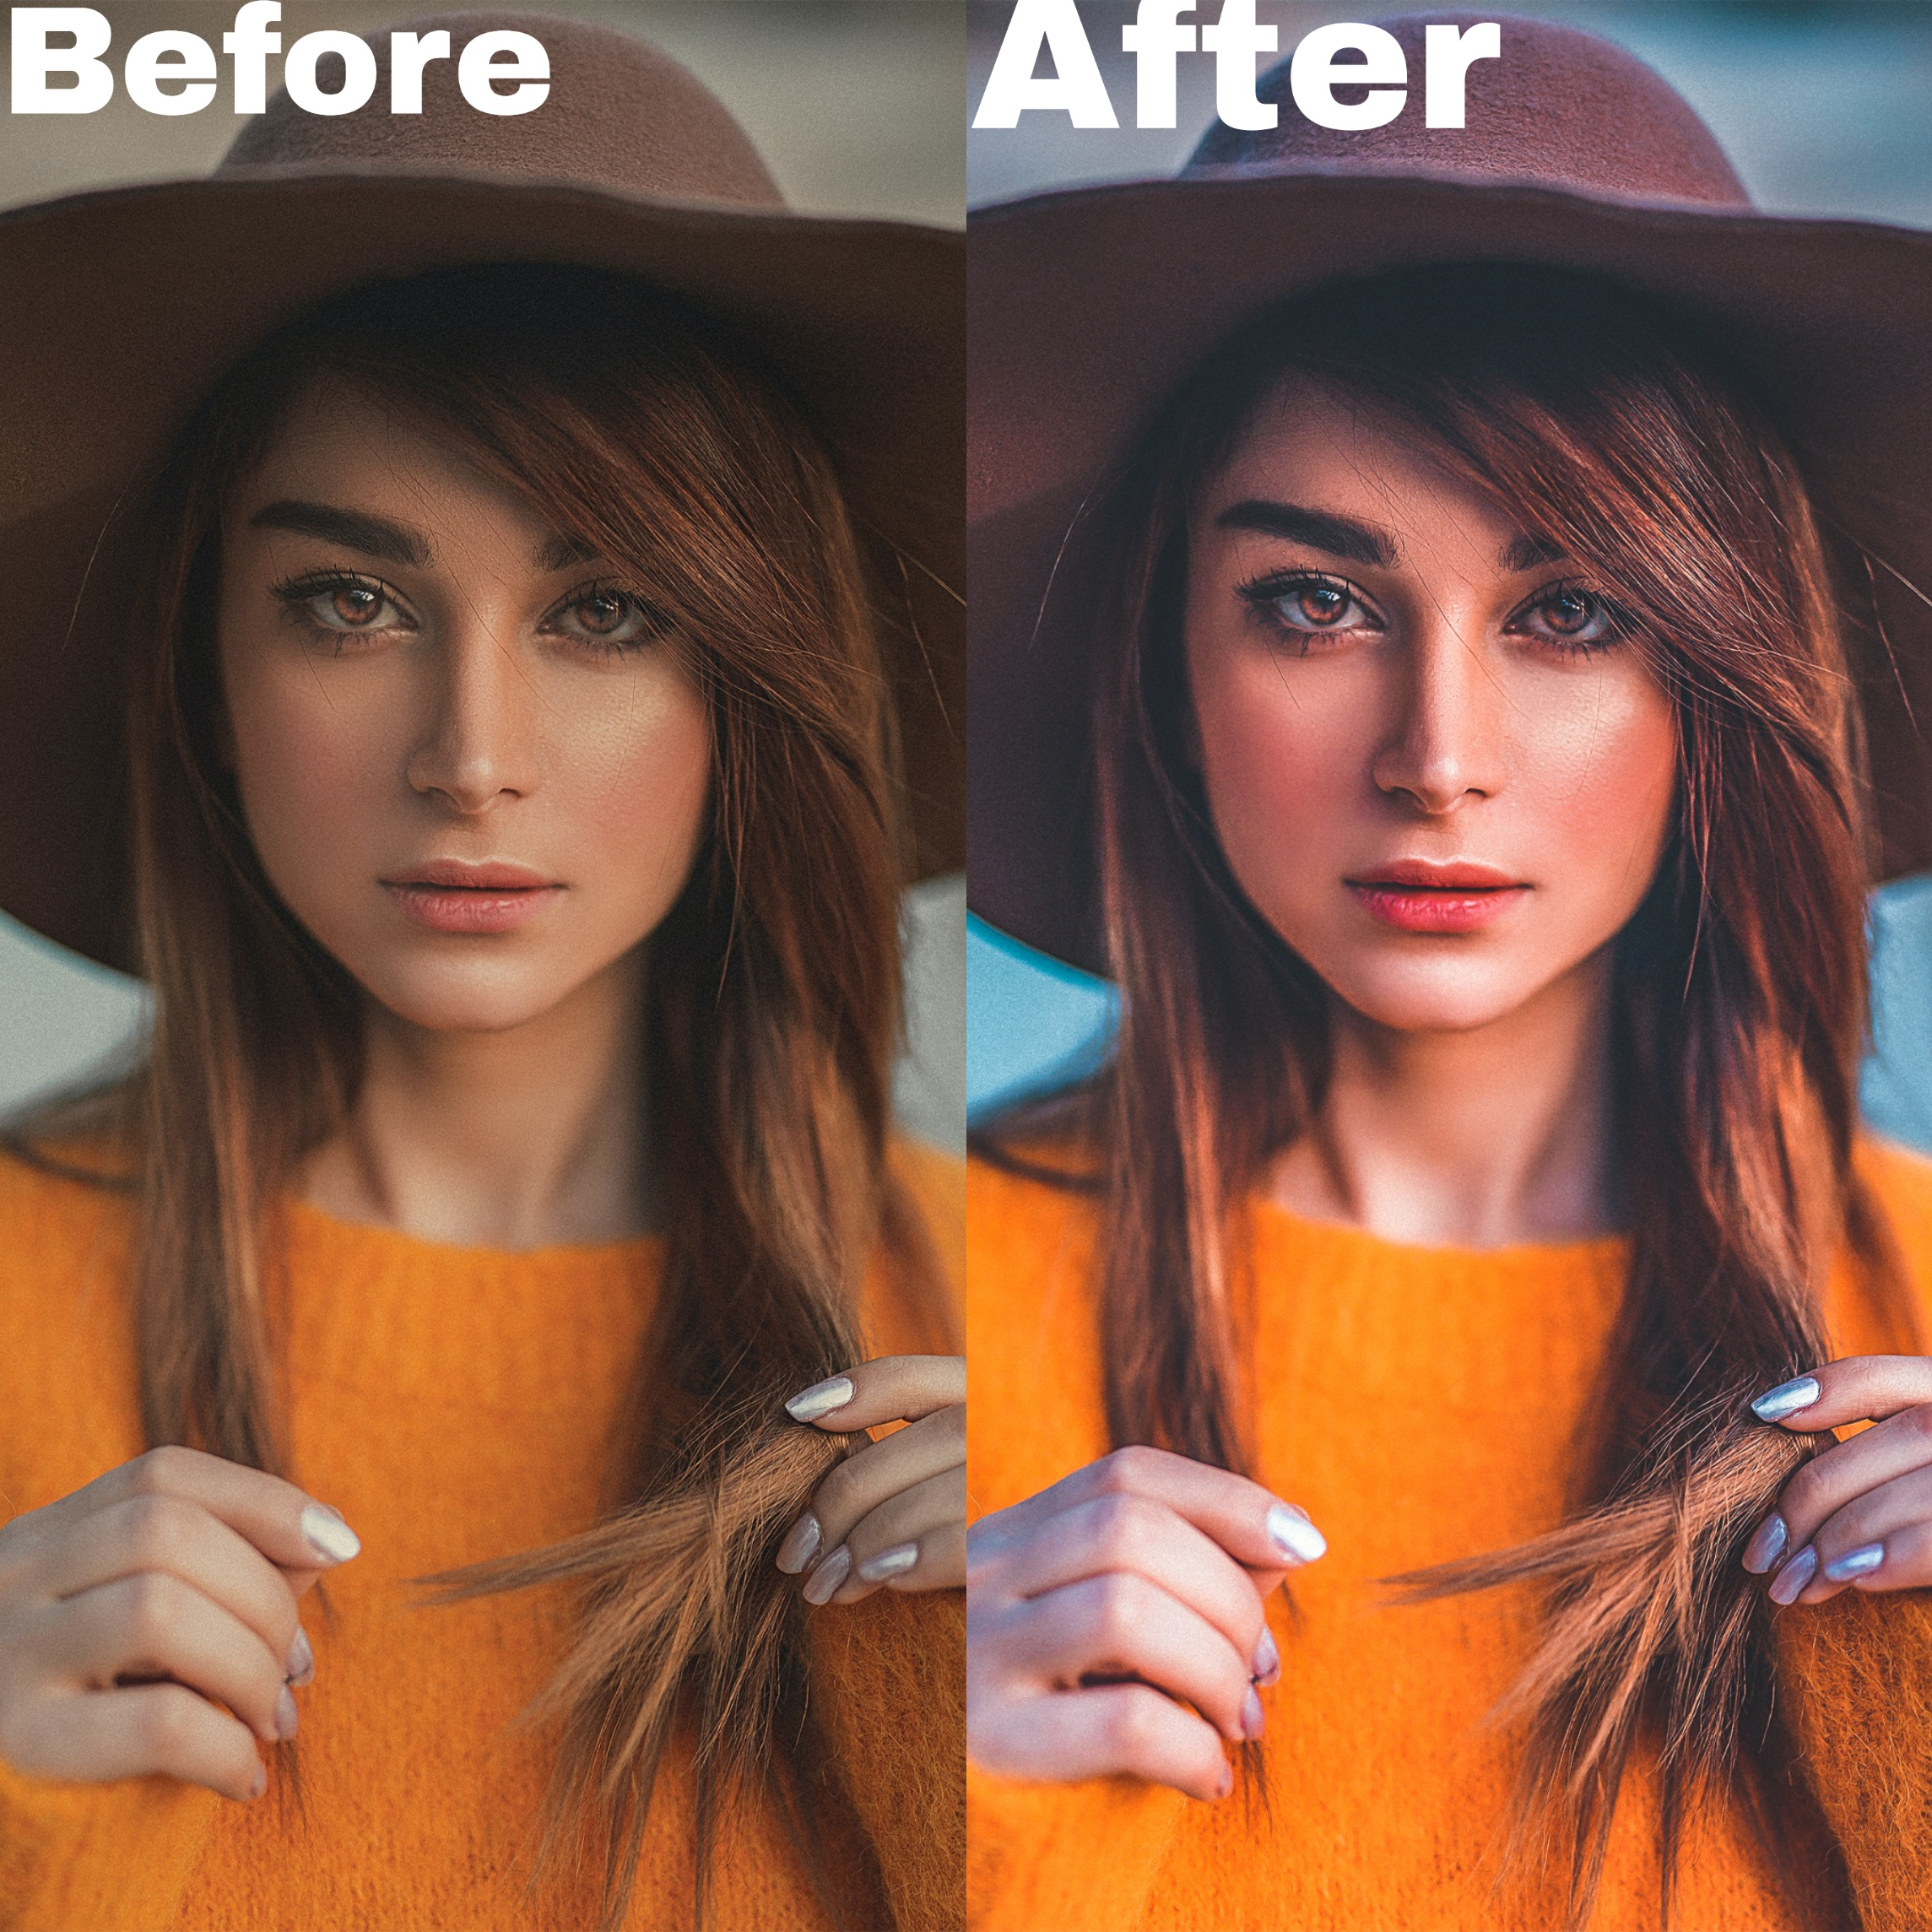 Photo enhancing and retouching